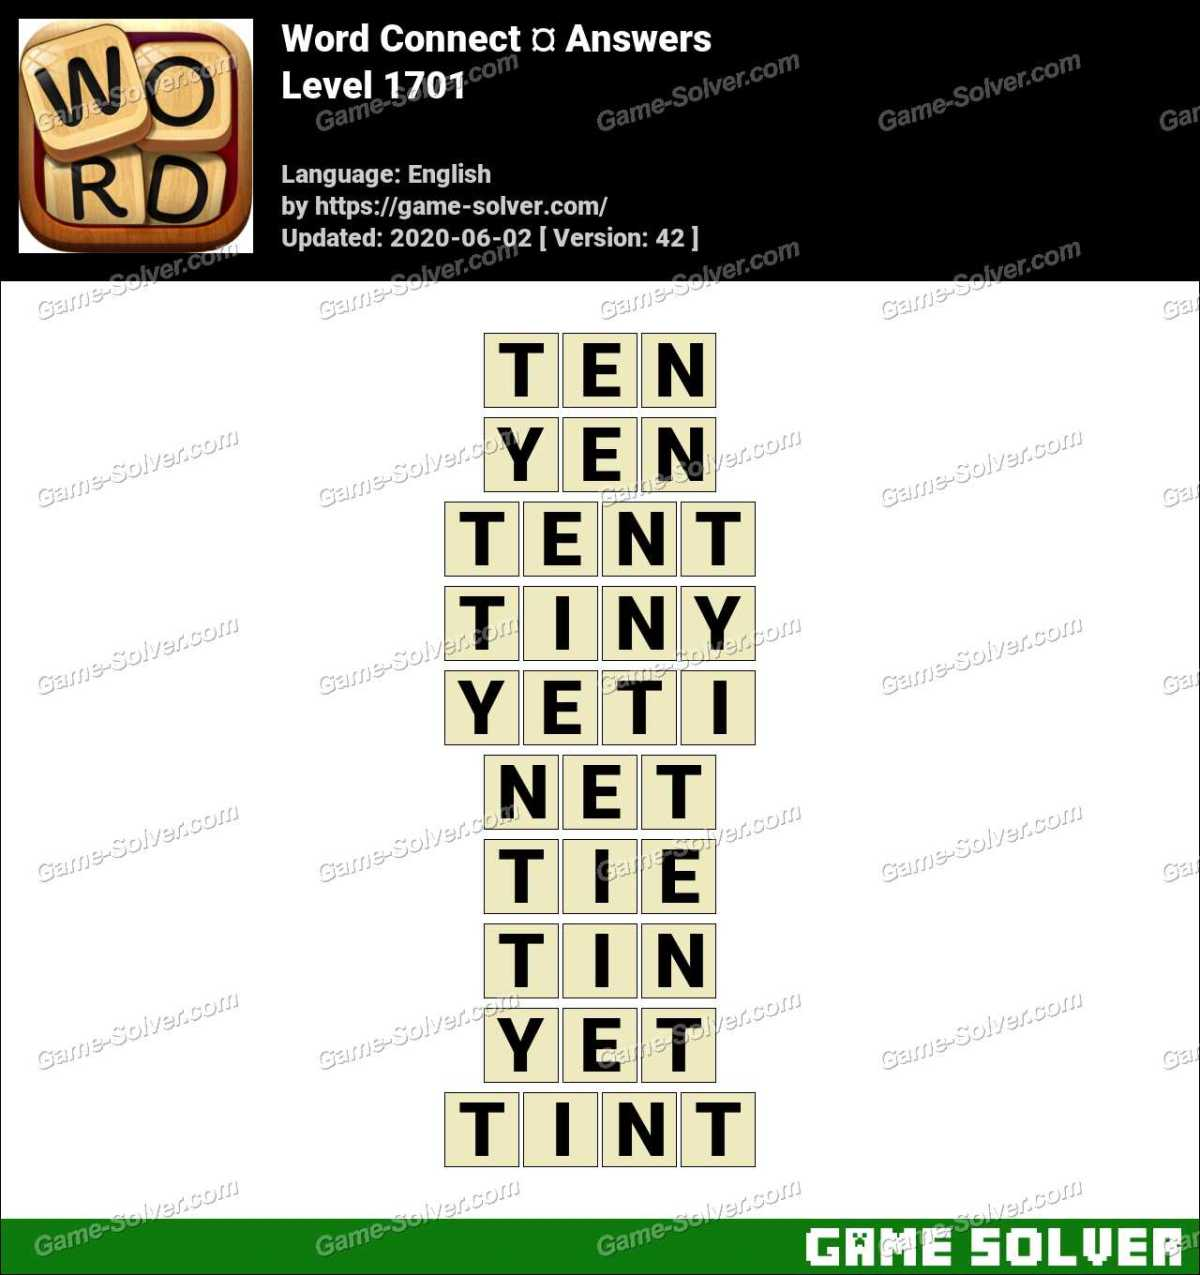 Word Connect Level 1701 Answers